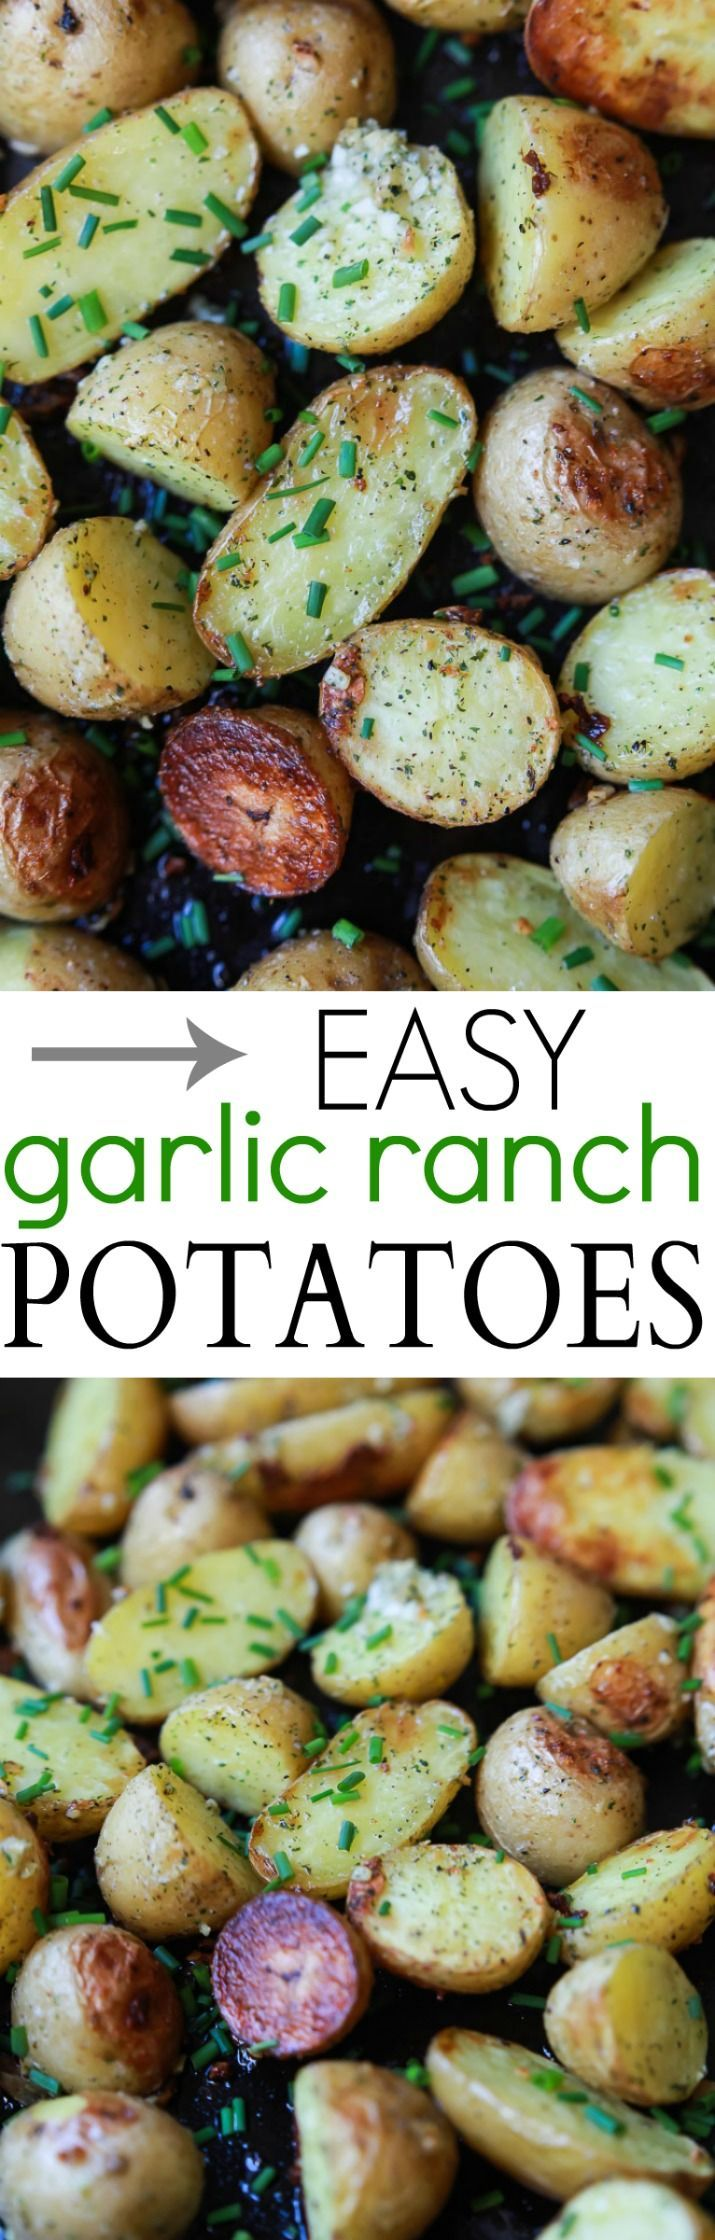 Easy Garlic Ranch Potatoes, a simple flavorful side dish that will become a staple recipe in your house! You're only 5 ingredients and 25 minutes away from potato heaven!   #glutenfree: